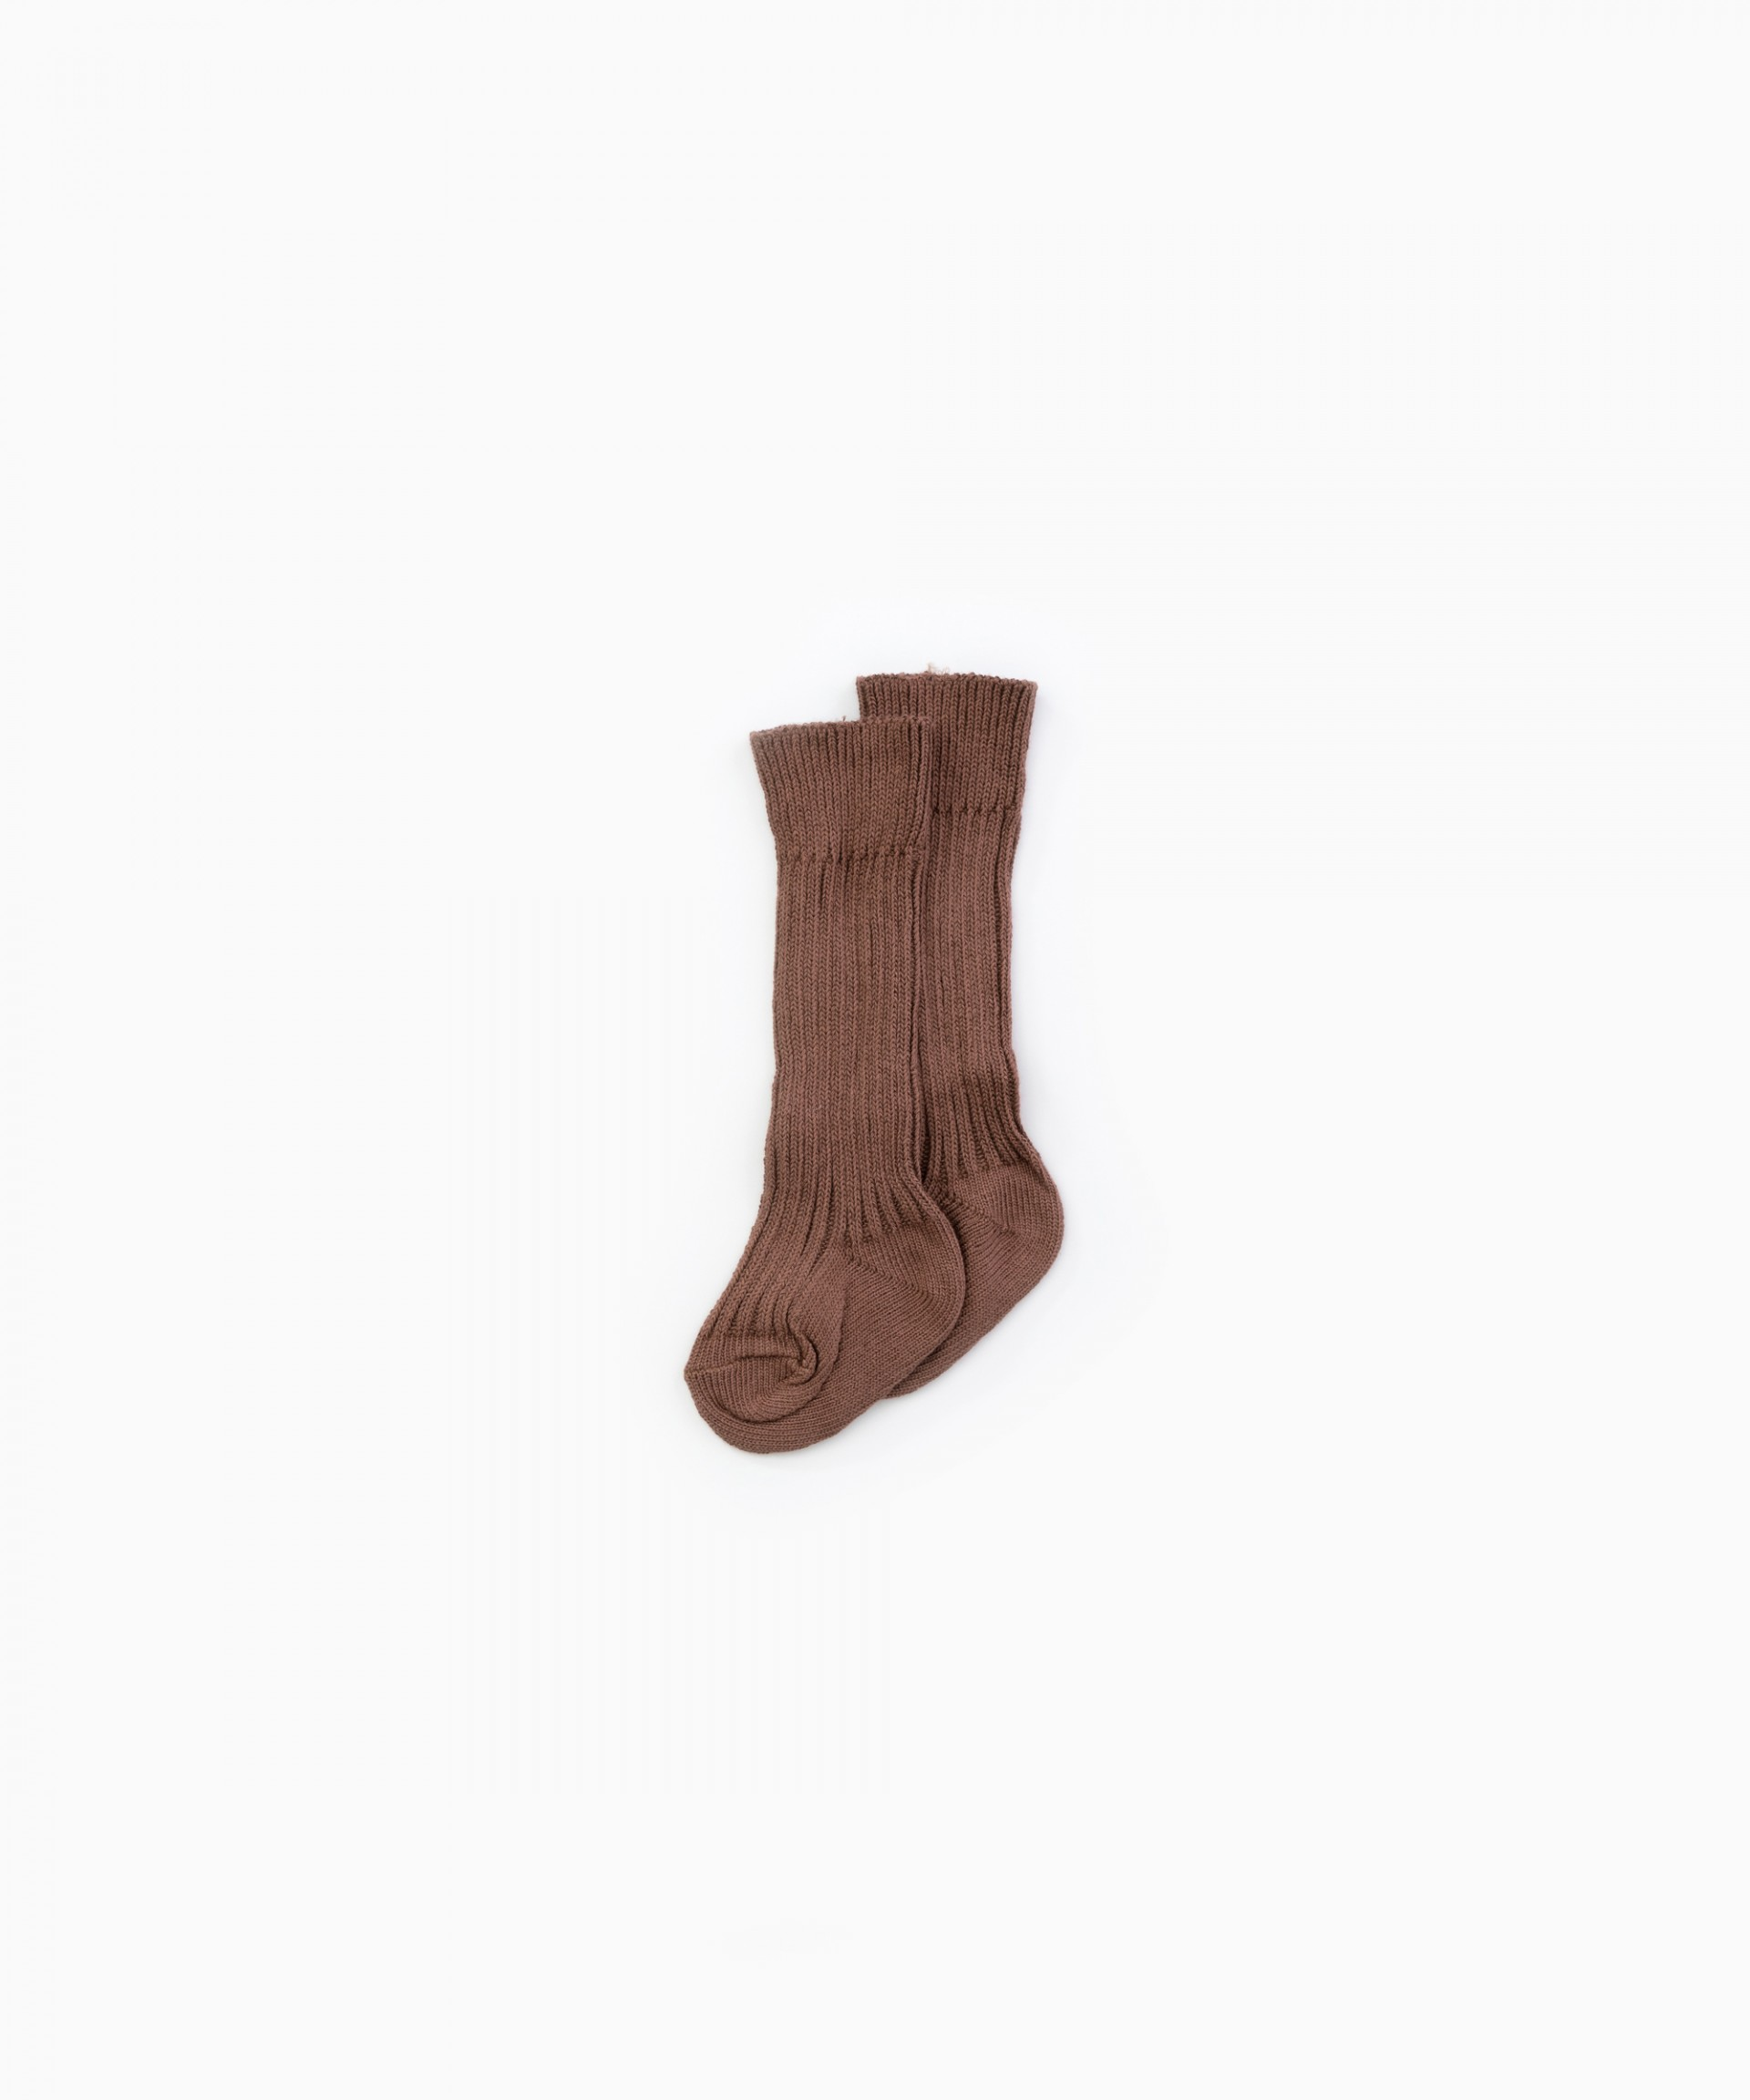 Socks with recycled fibres | Woodwork